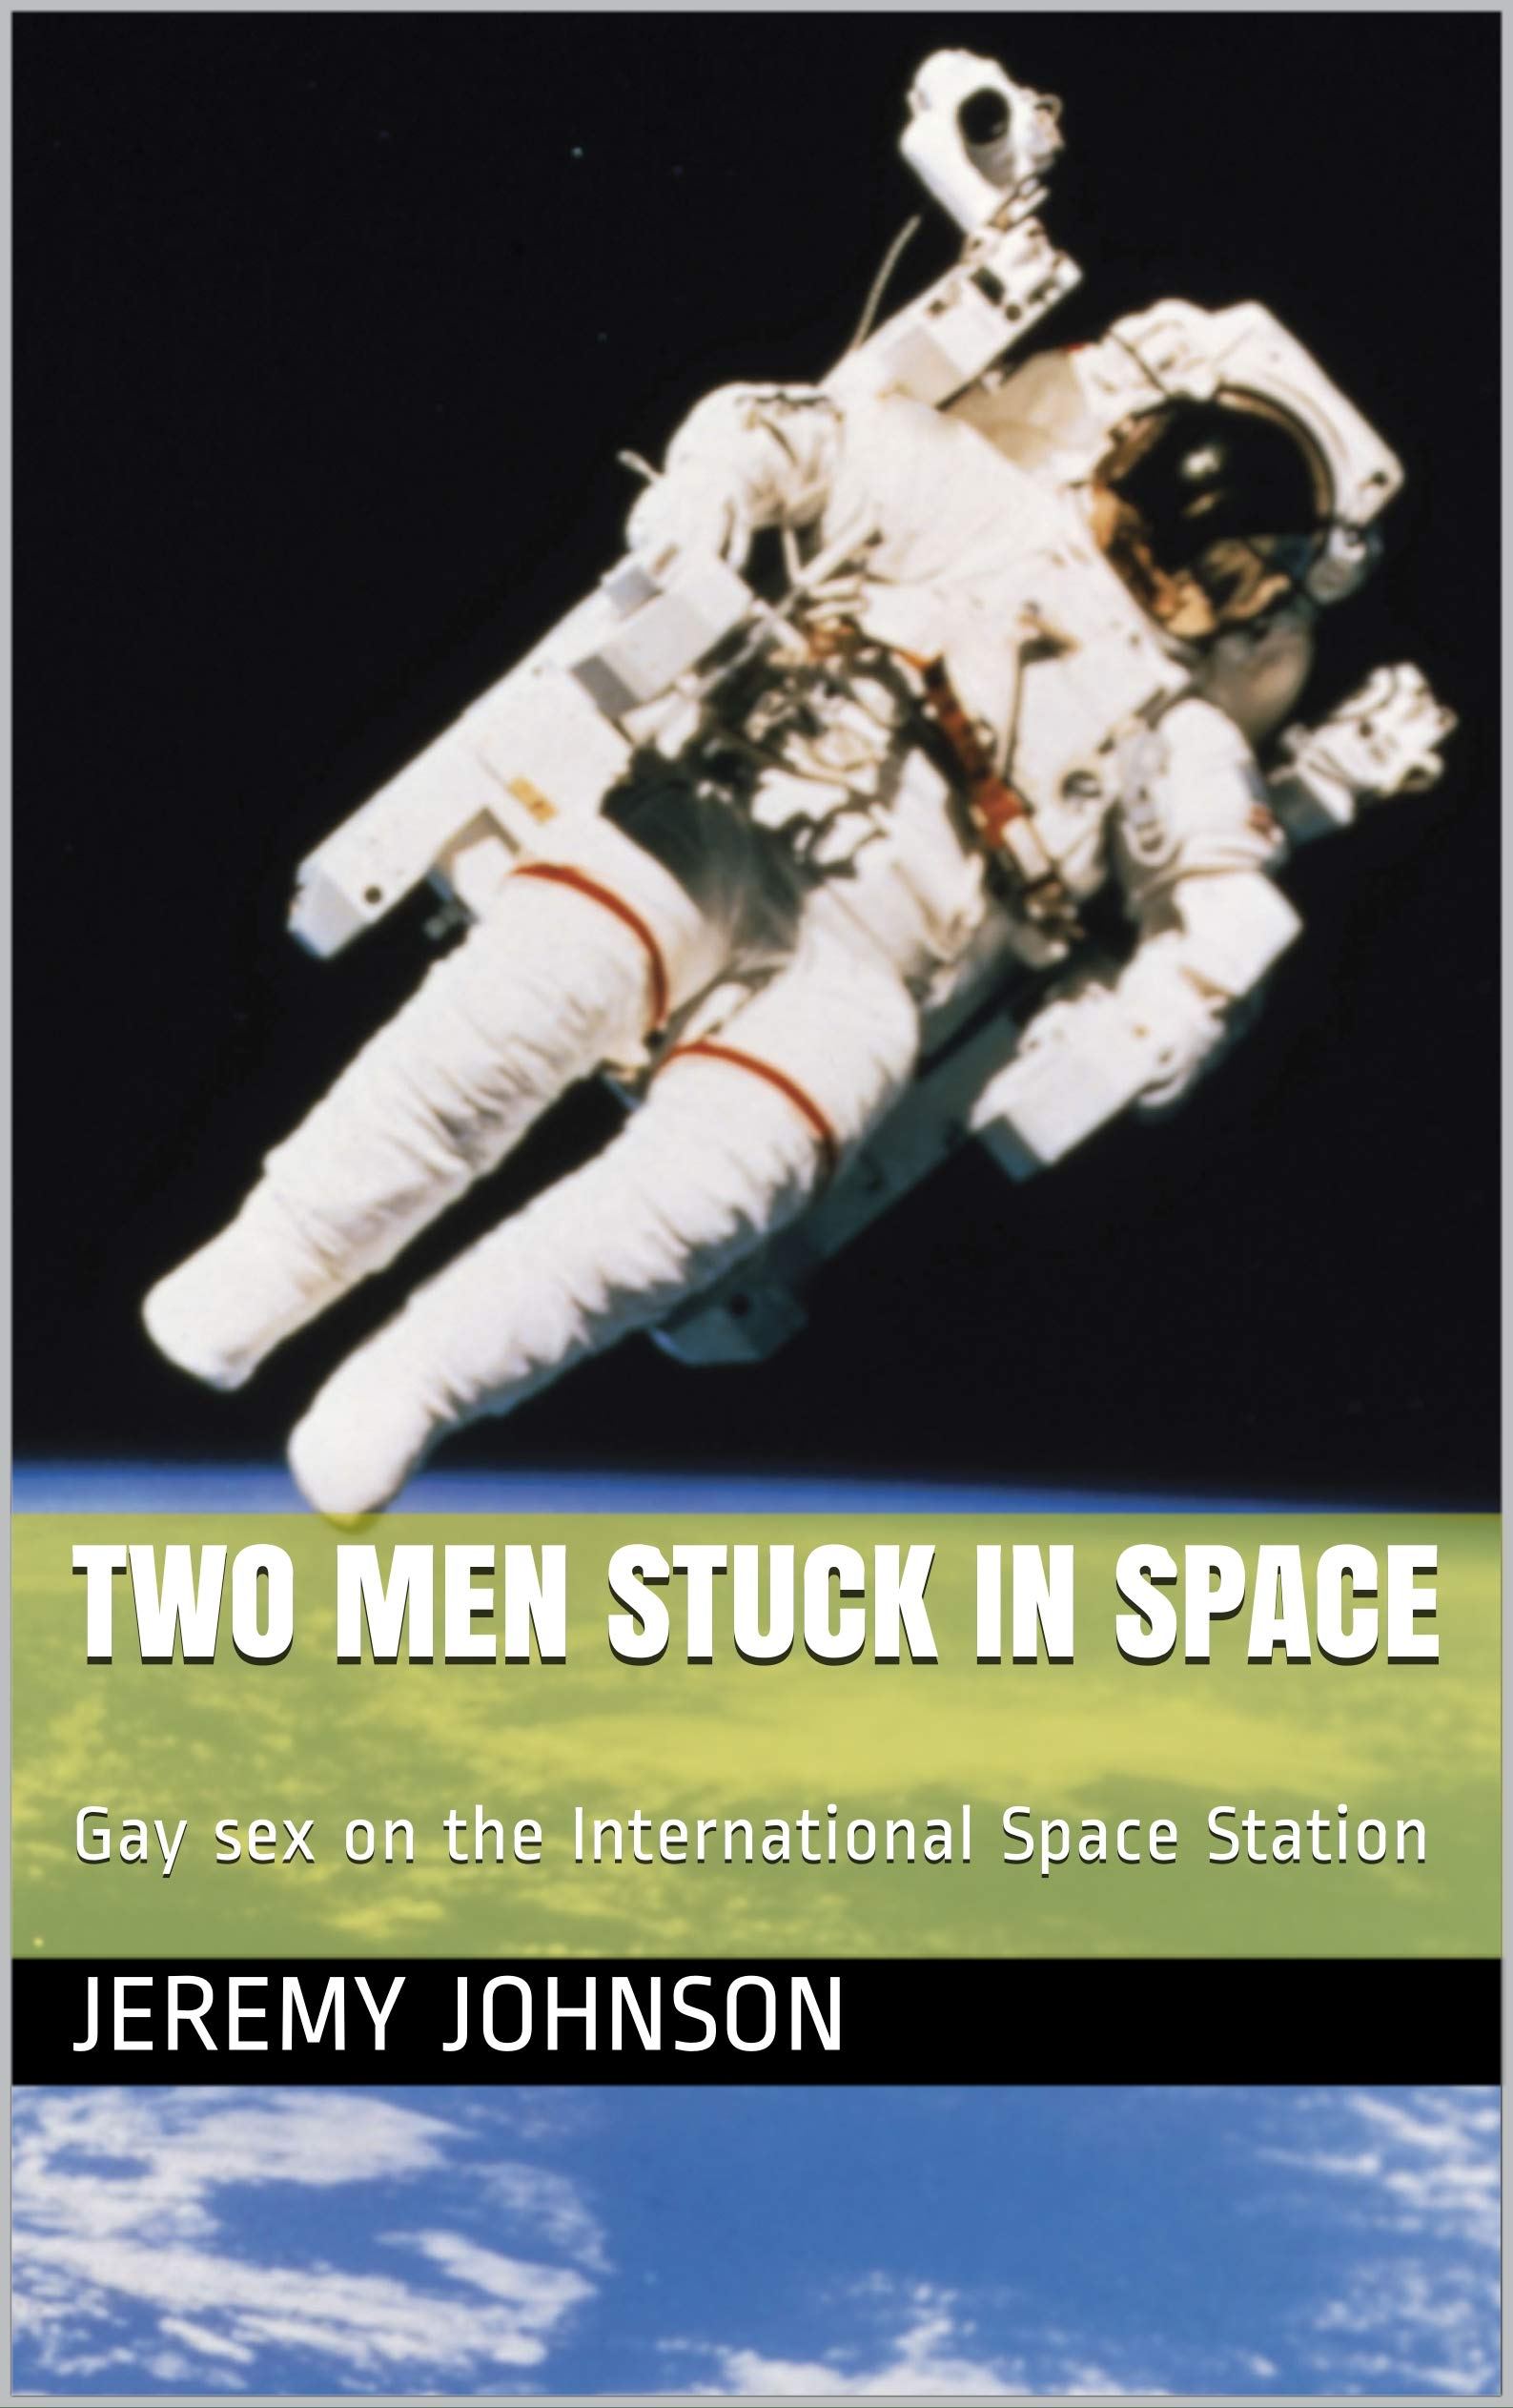 Two Men Stuck in Space: Gay sex on the International Space Station